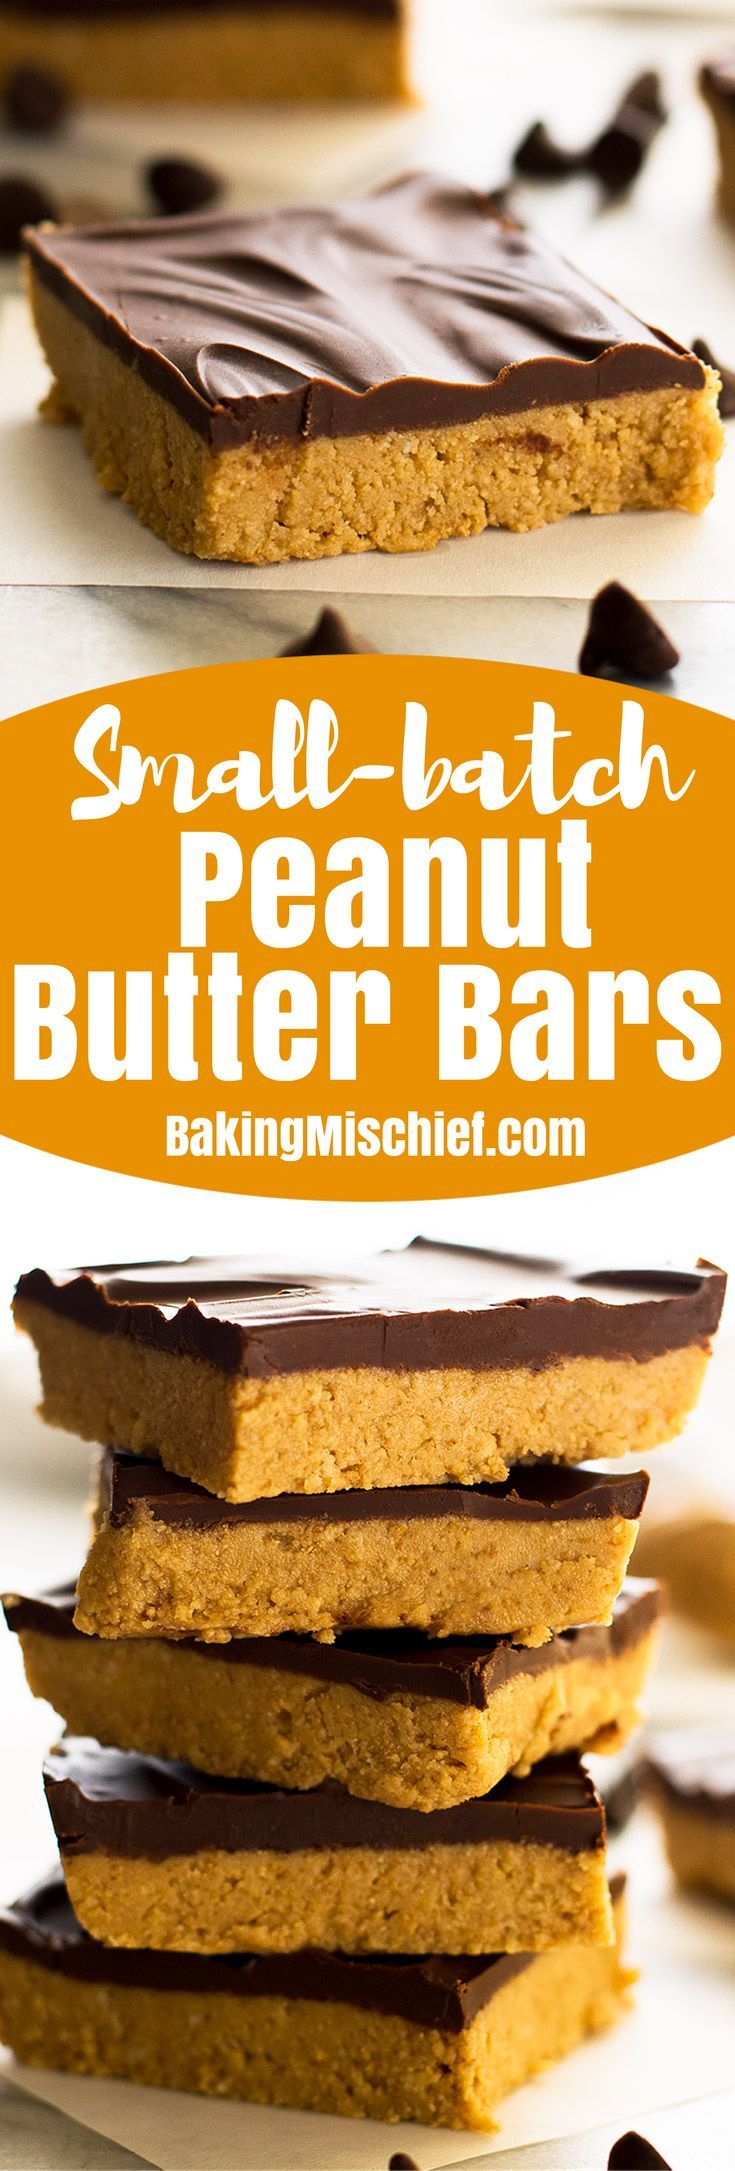 These easy Small-batch Peanut Butter Bars taste just like giant Reese's peanut butter cups. From http://BakingMischief.com | Small-batch Dessert | Peanut Butter Desserts |